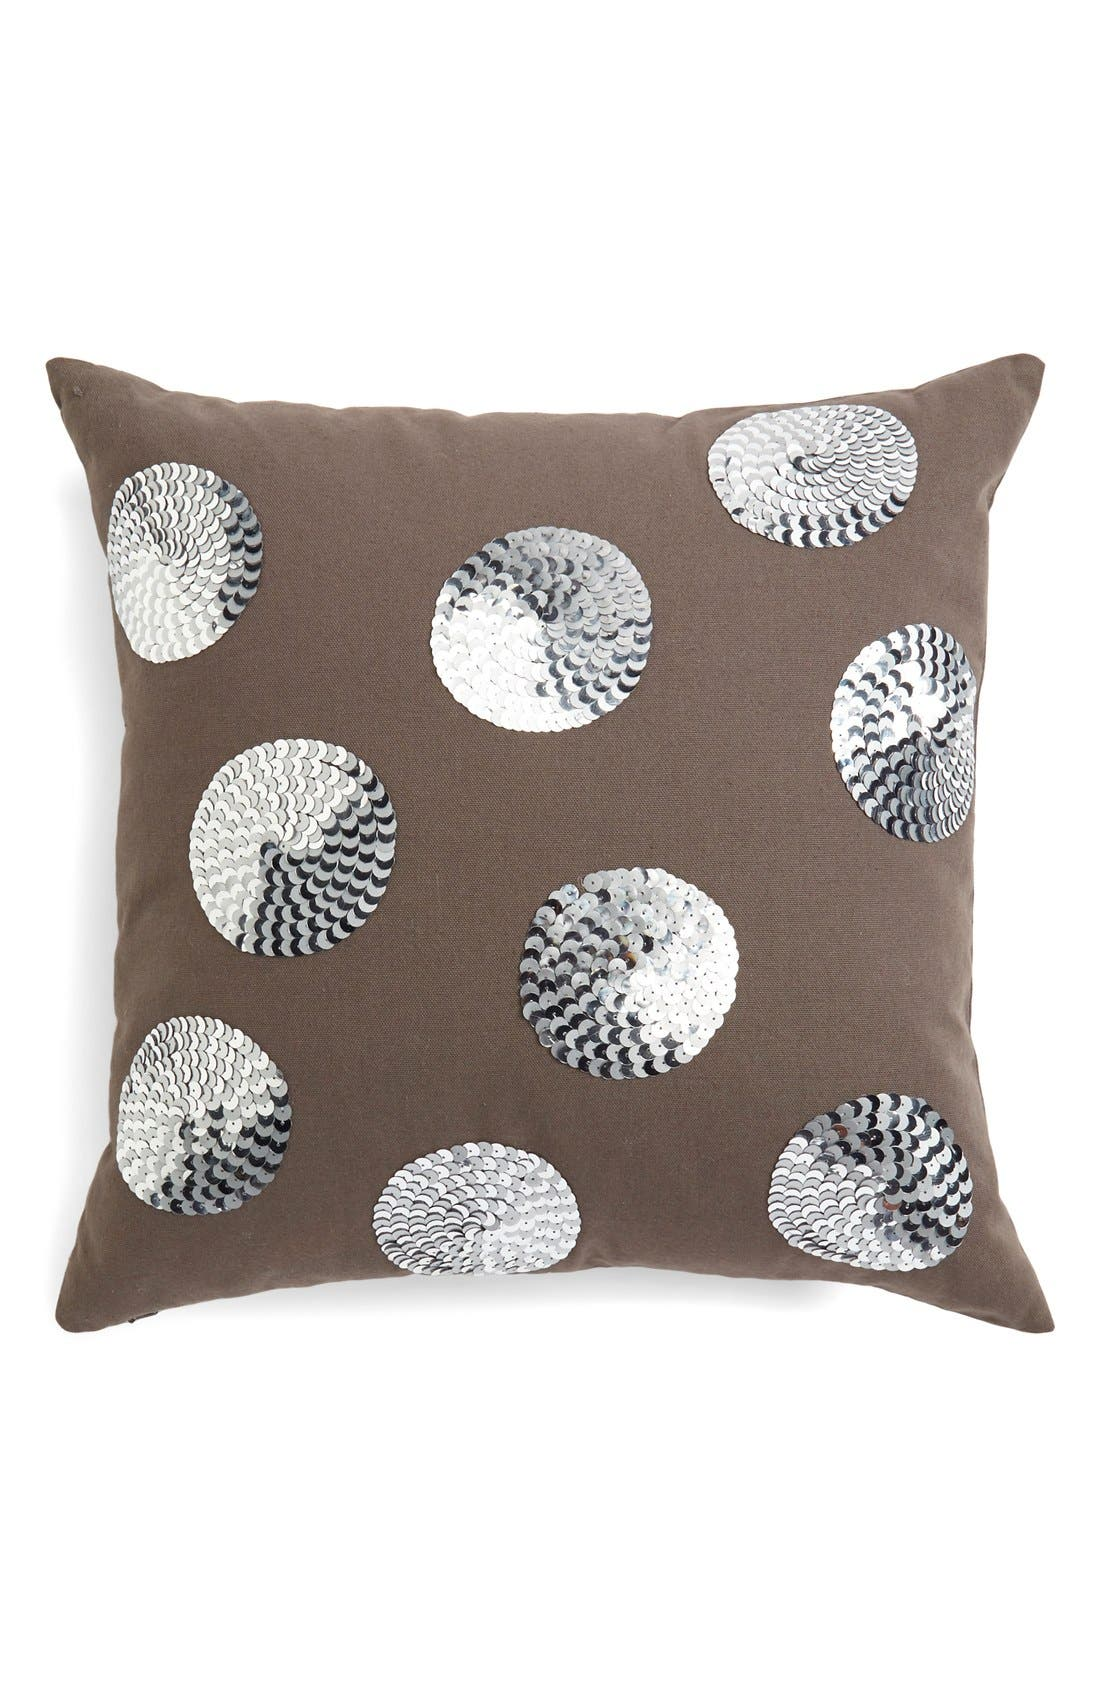 Alternate Image 1 Selected - Nordstrom at Home 'Dottie Paillettes'Accent Pillow